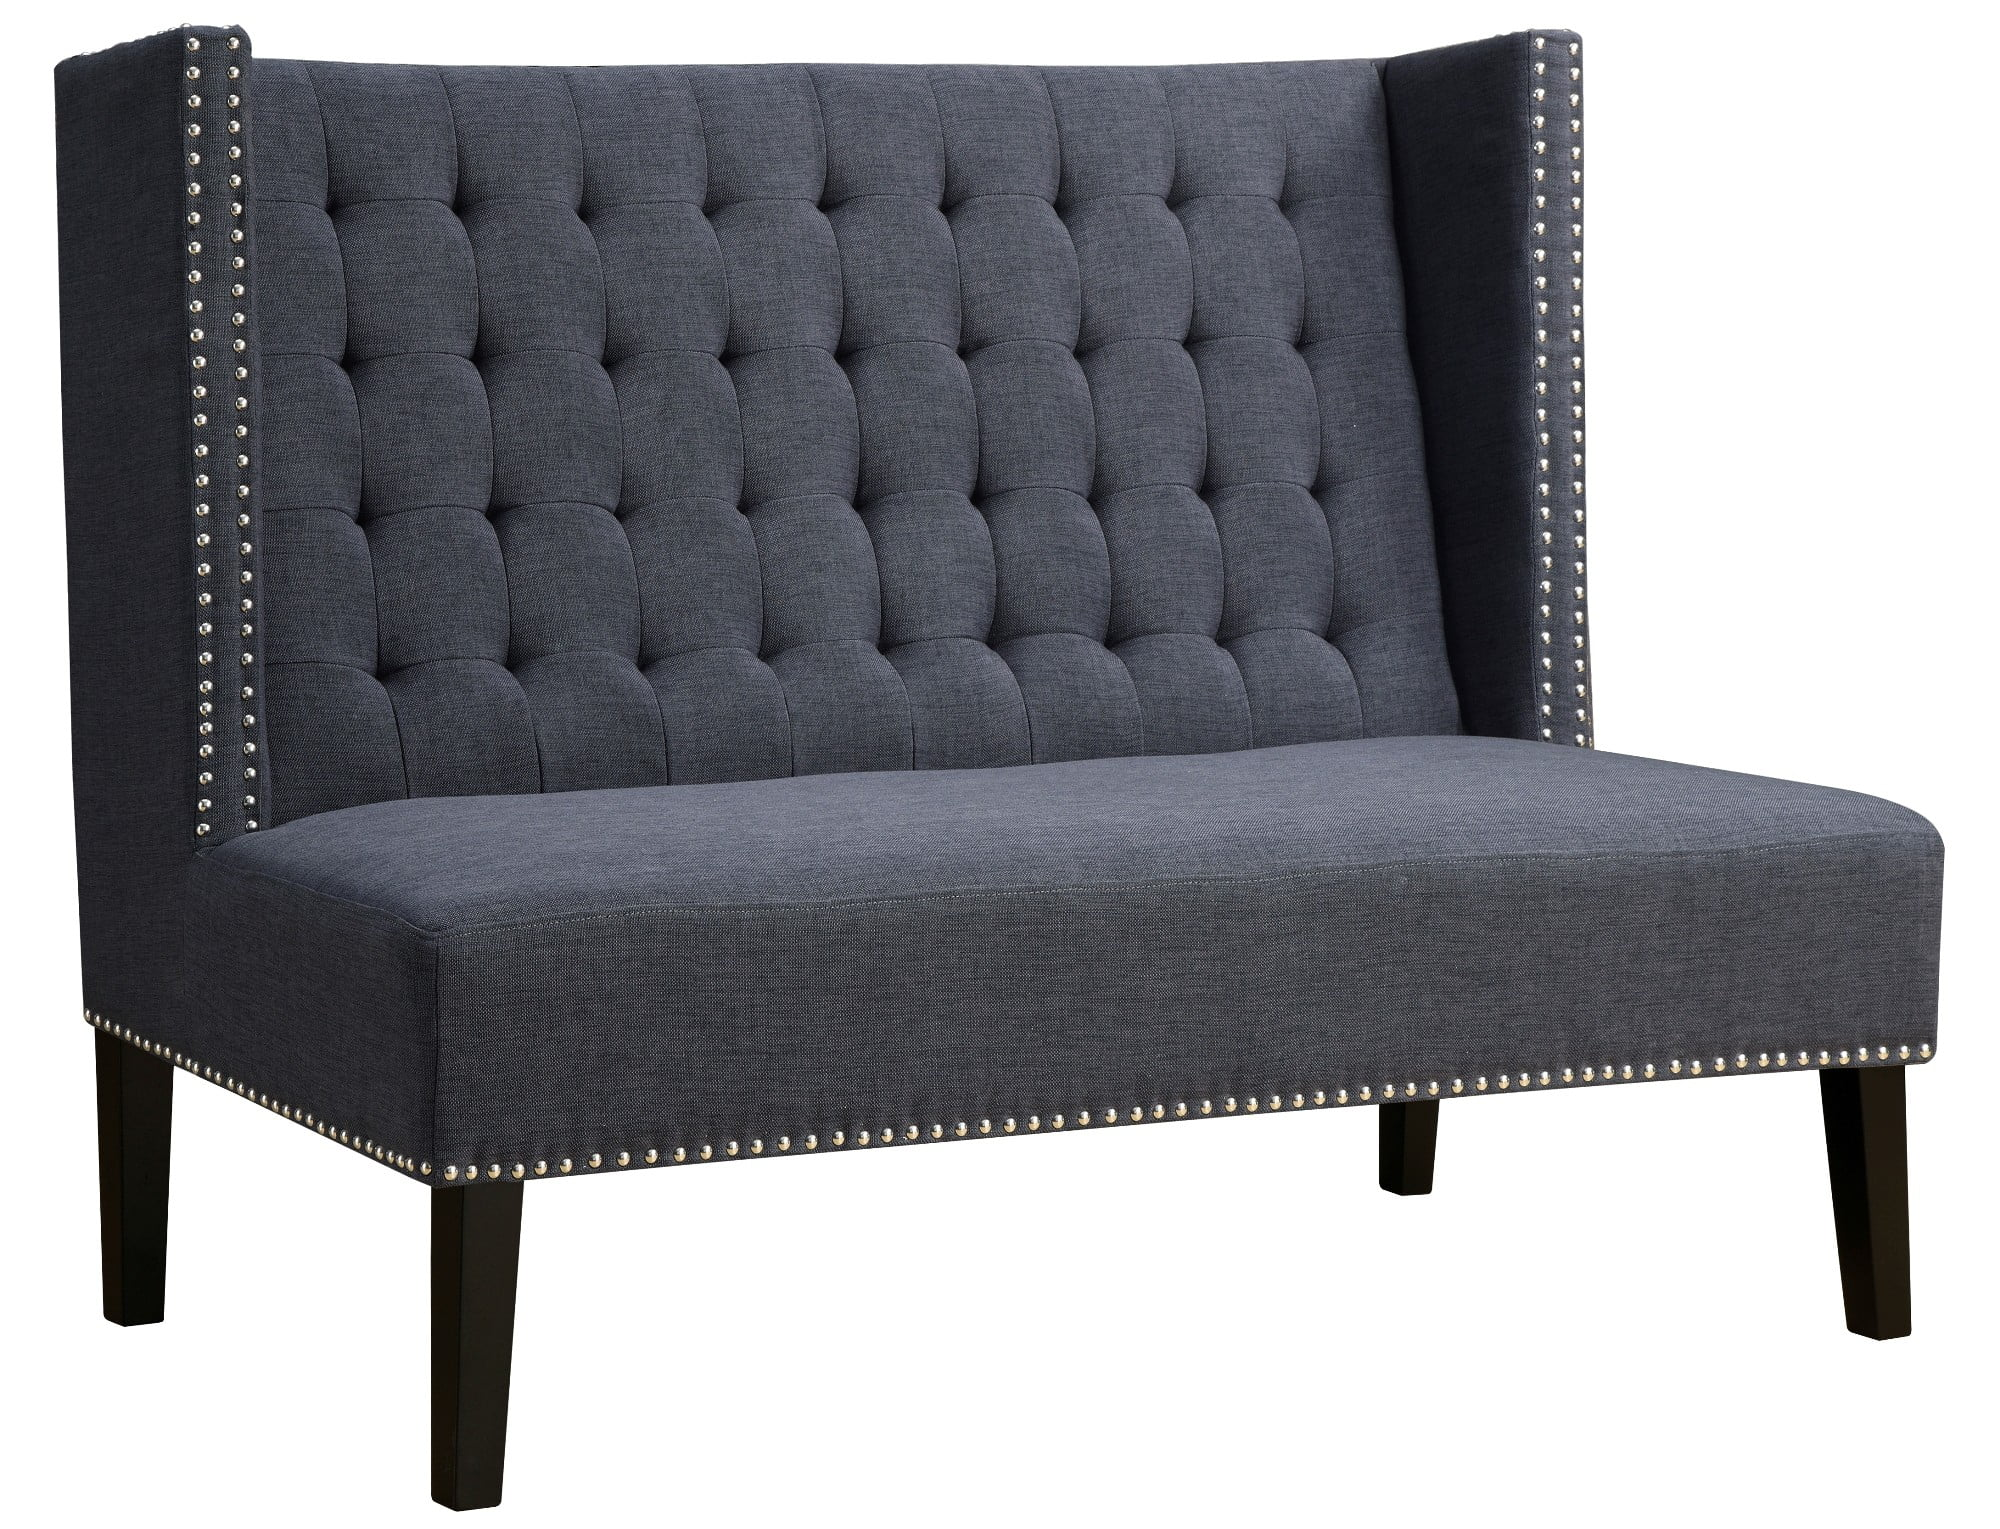 halifax grey linen banquette bench from tov tov 63114 grey coleman furniture. Black Bedroom Furniture Sets. Home Design Ideas